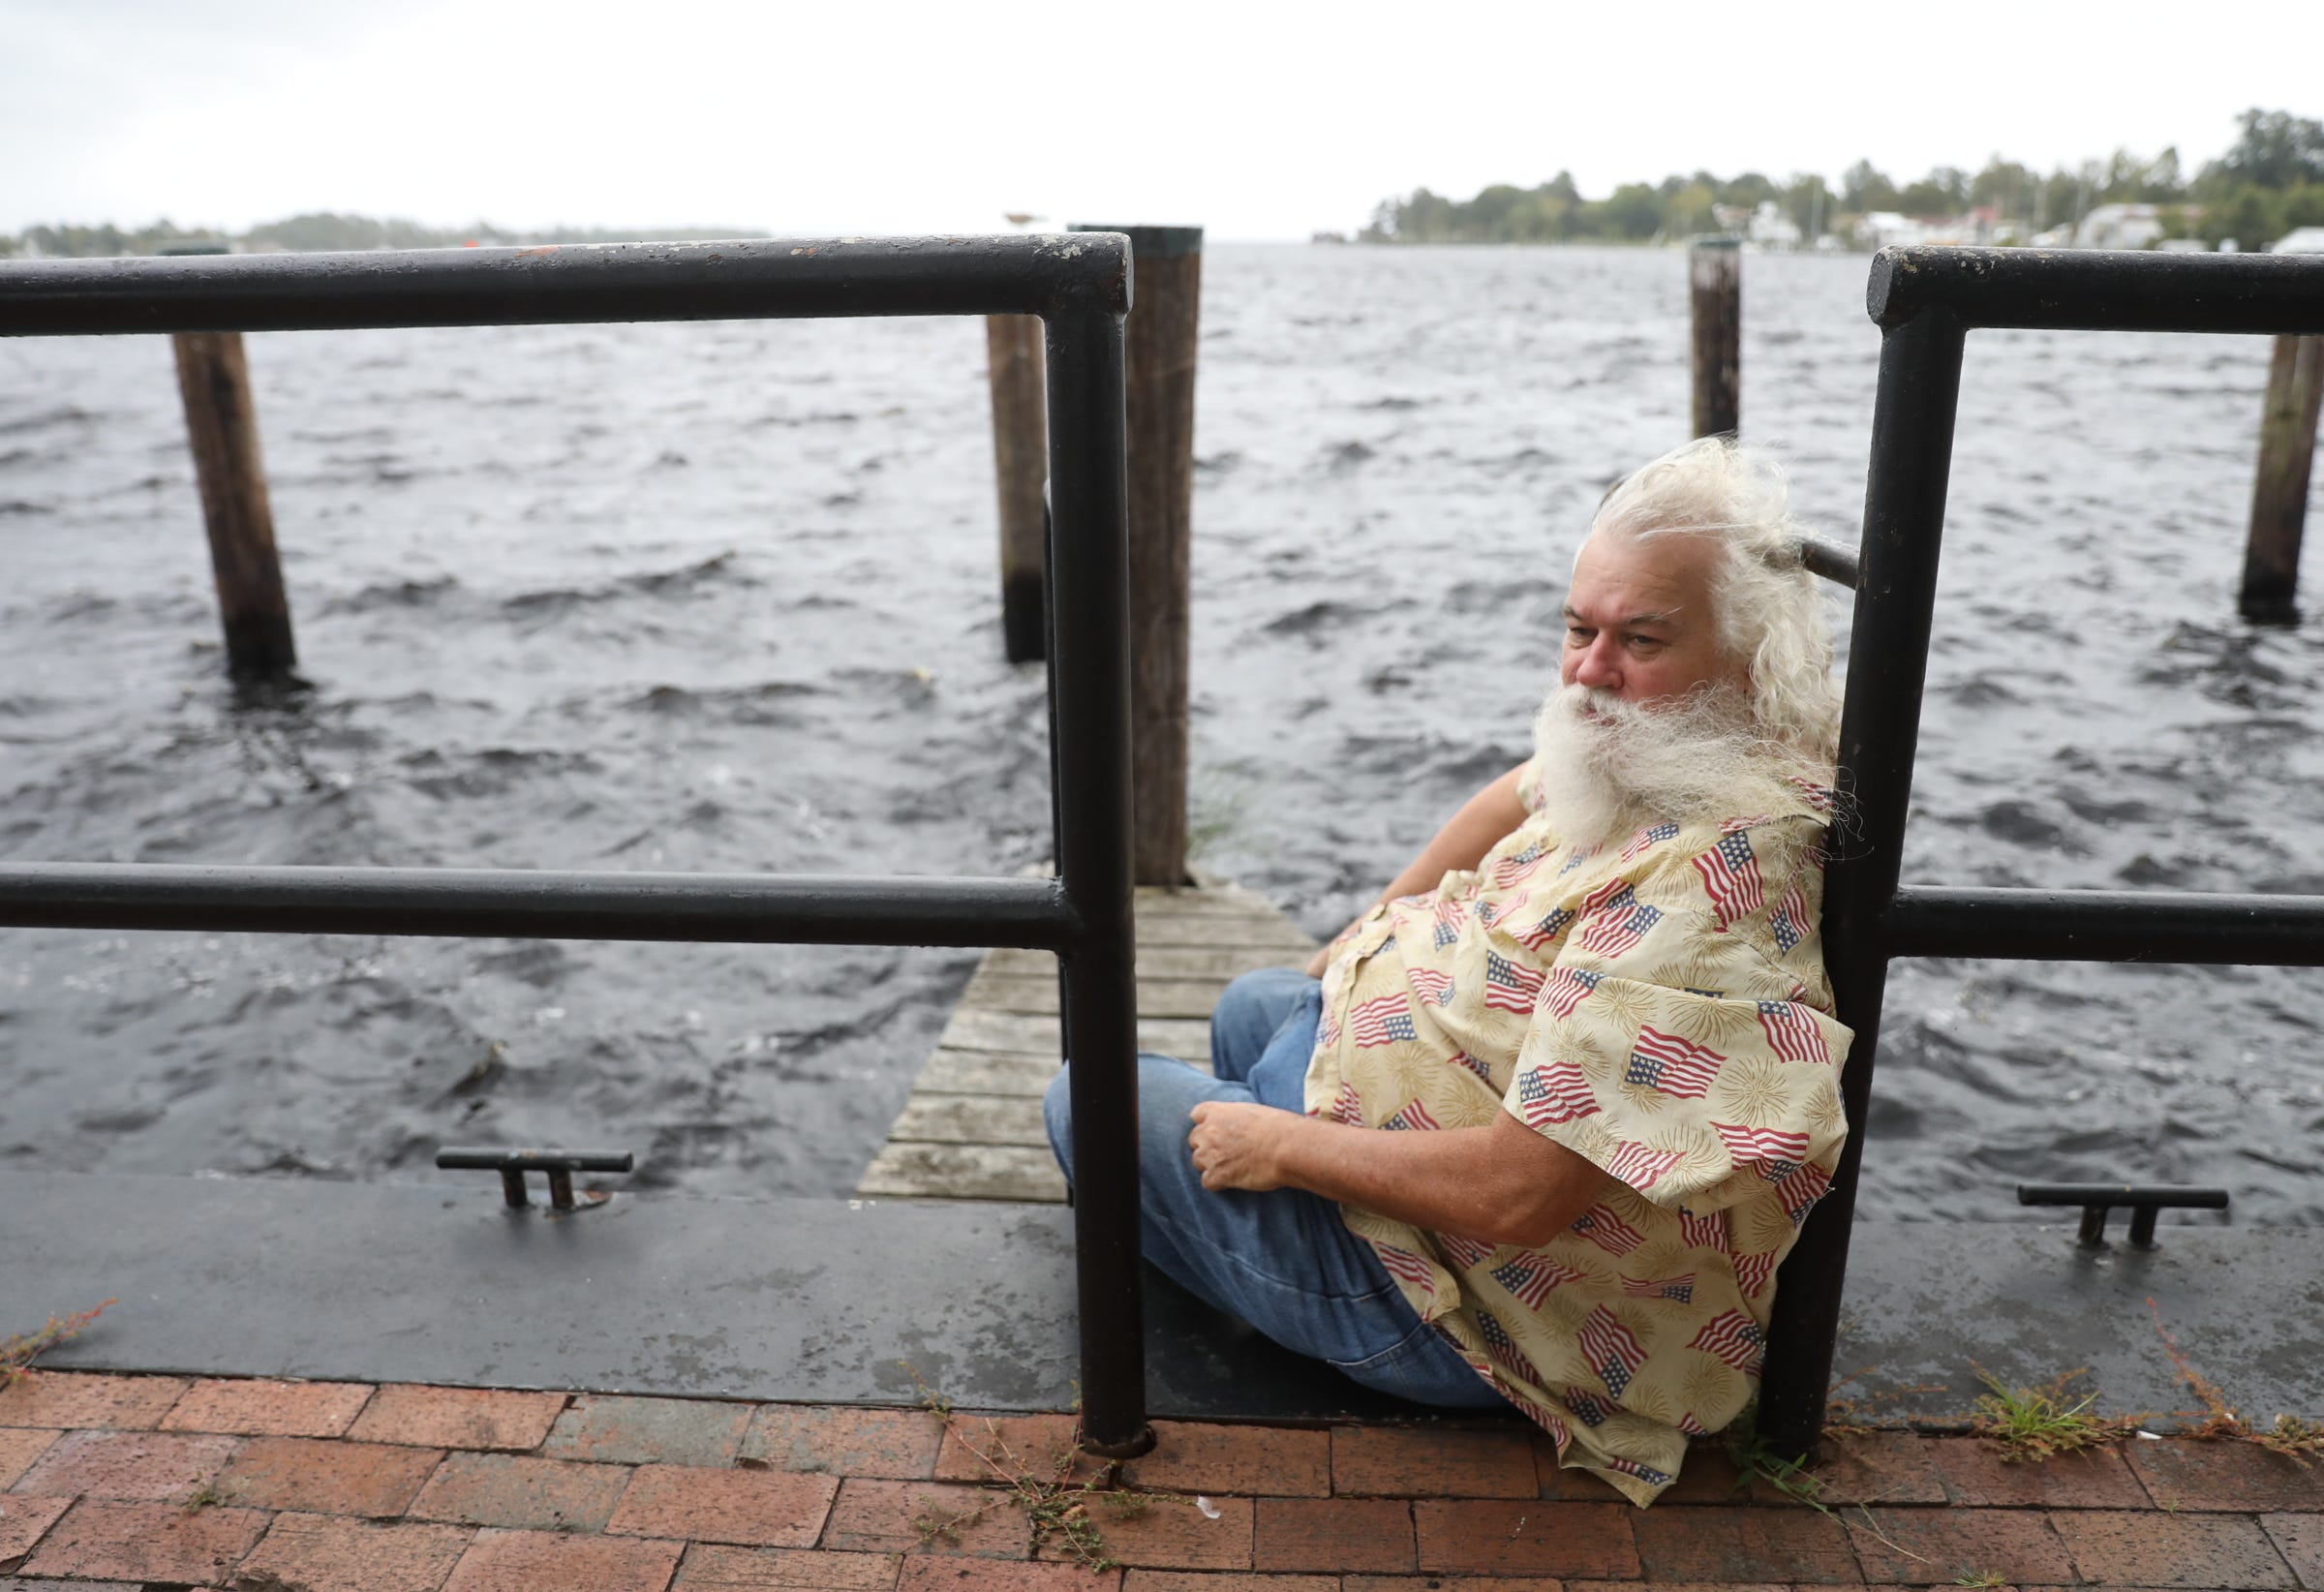 Daniel Harris sits on the bulkhead of Mariners' Wharf Park in downtown Elizabeth City, N.C., on Sept. 13, 2018. Harris plans to ride out the storm in his home.